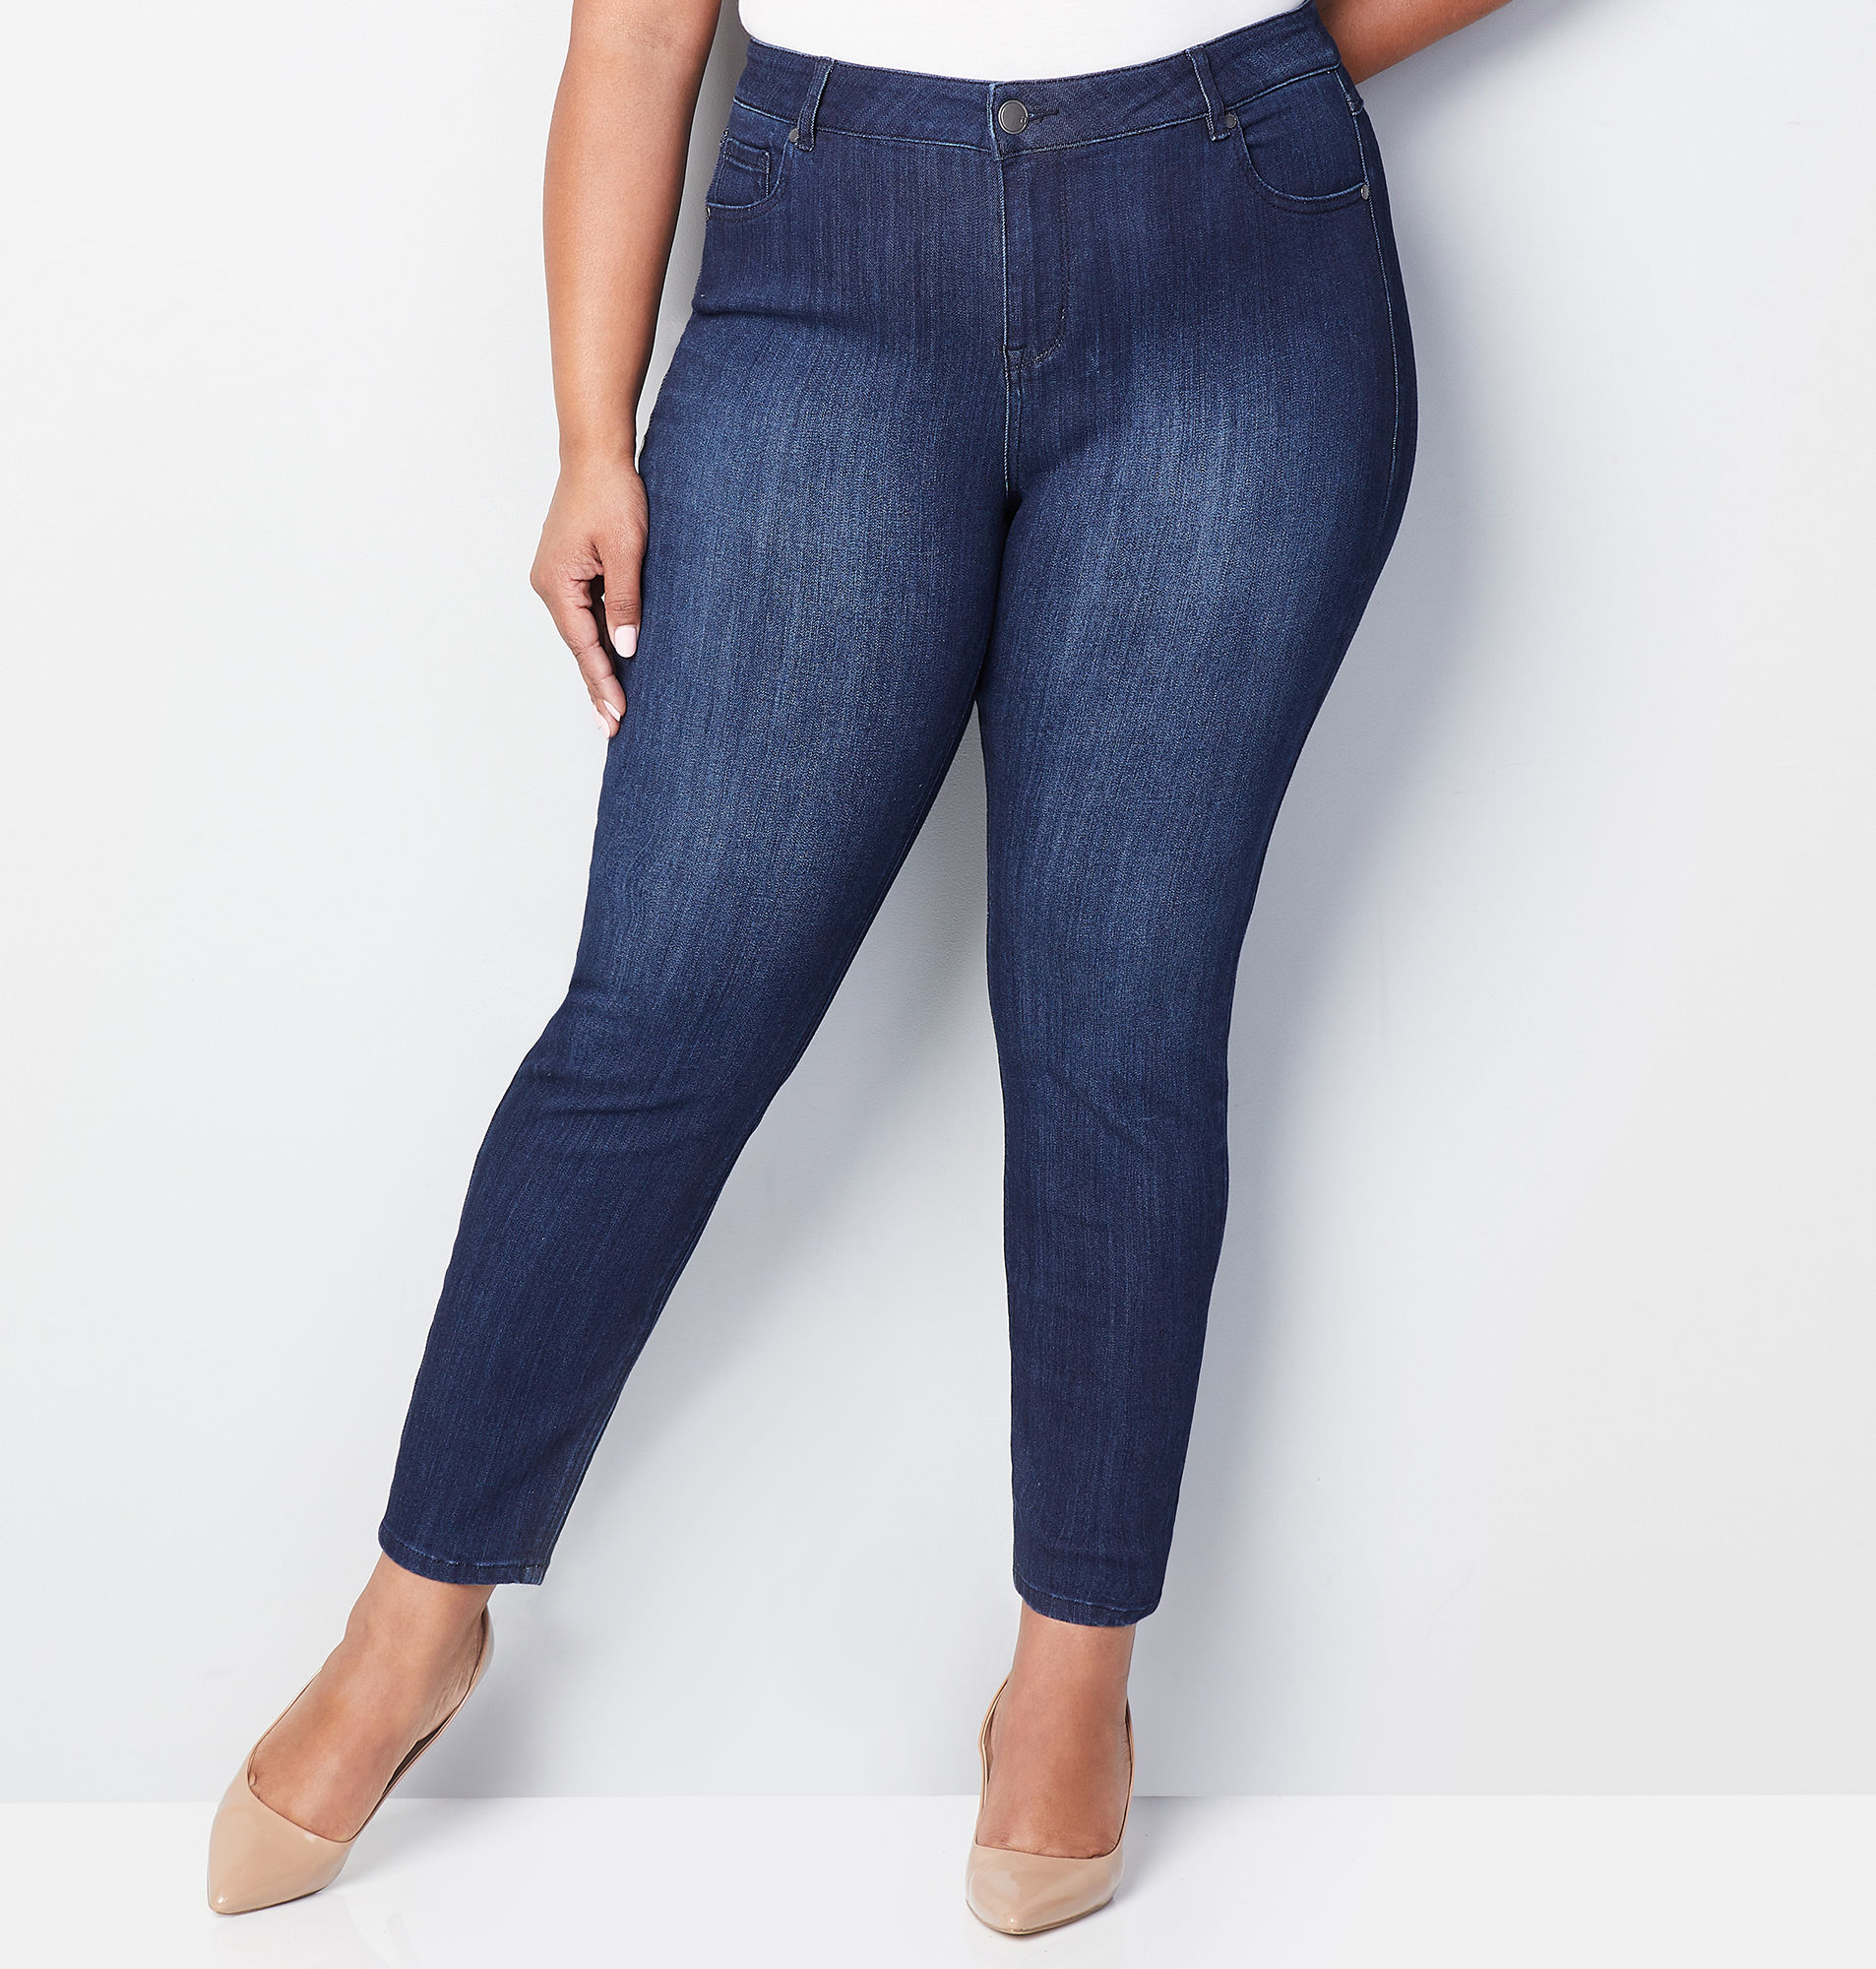 Shop Women's Plus Size Stretch Jeans 14-32| Avenue.com